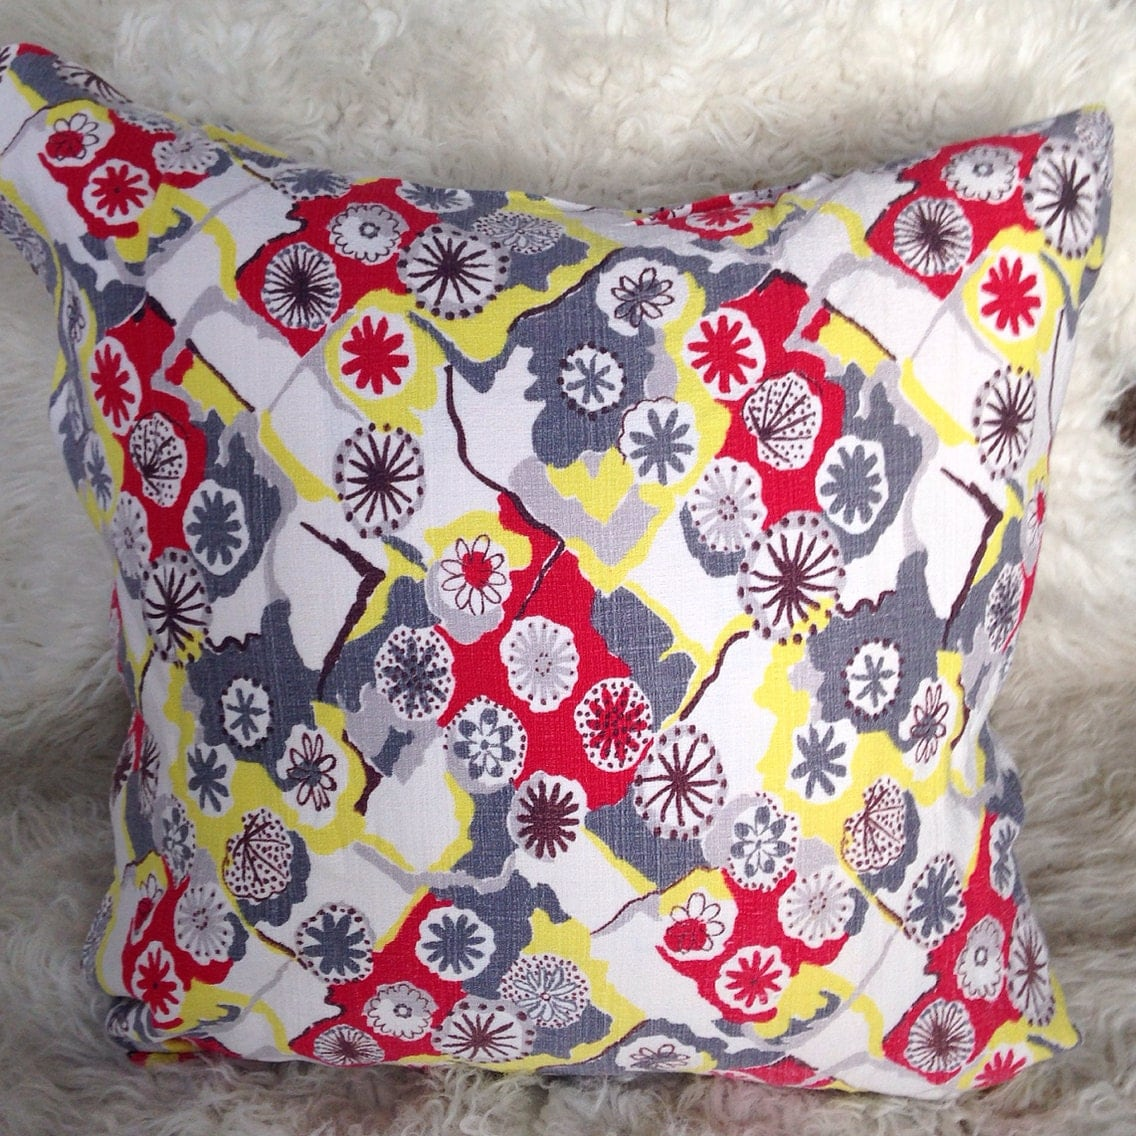 Mid century modern atomic throw pillow cover